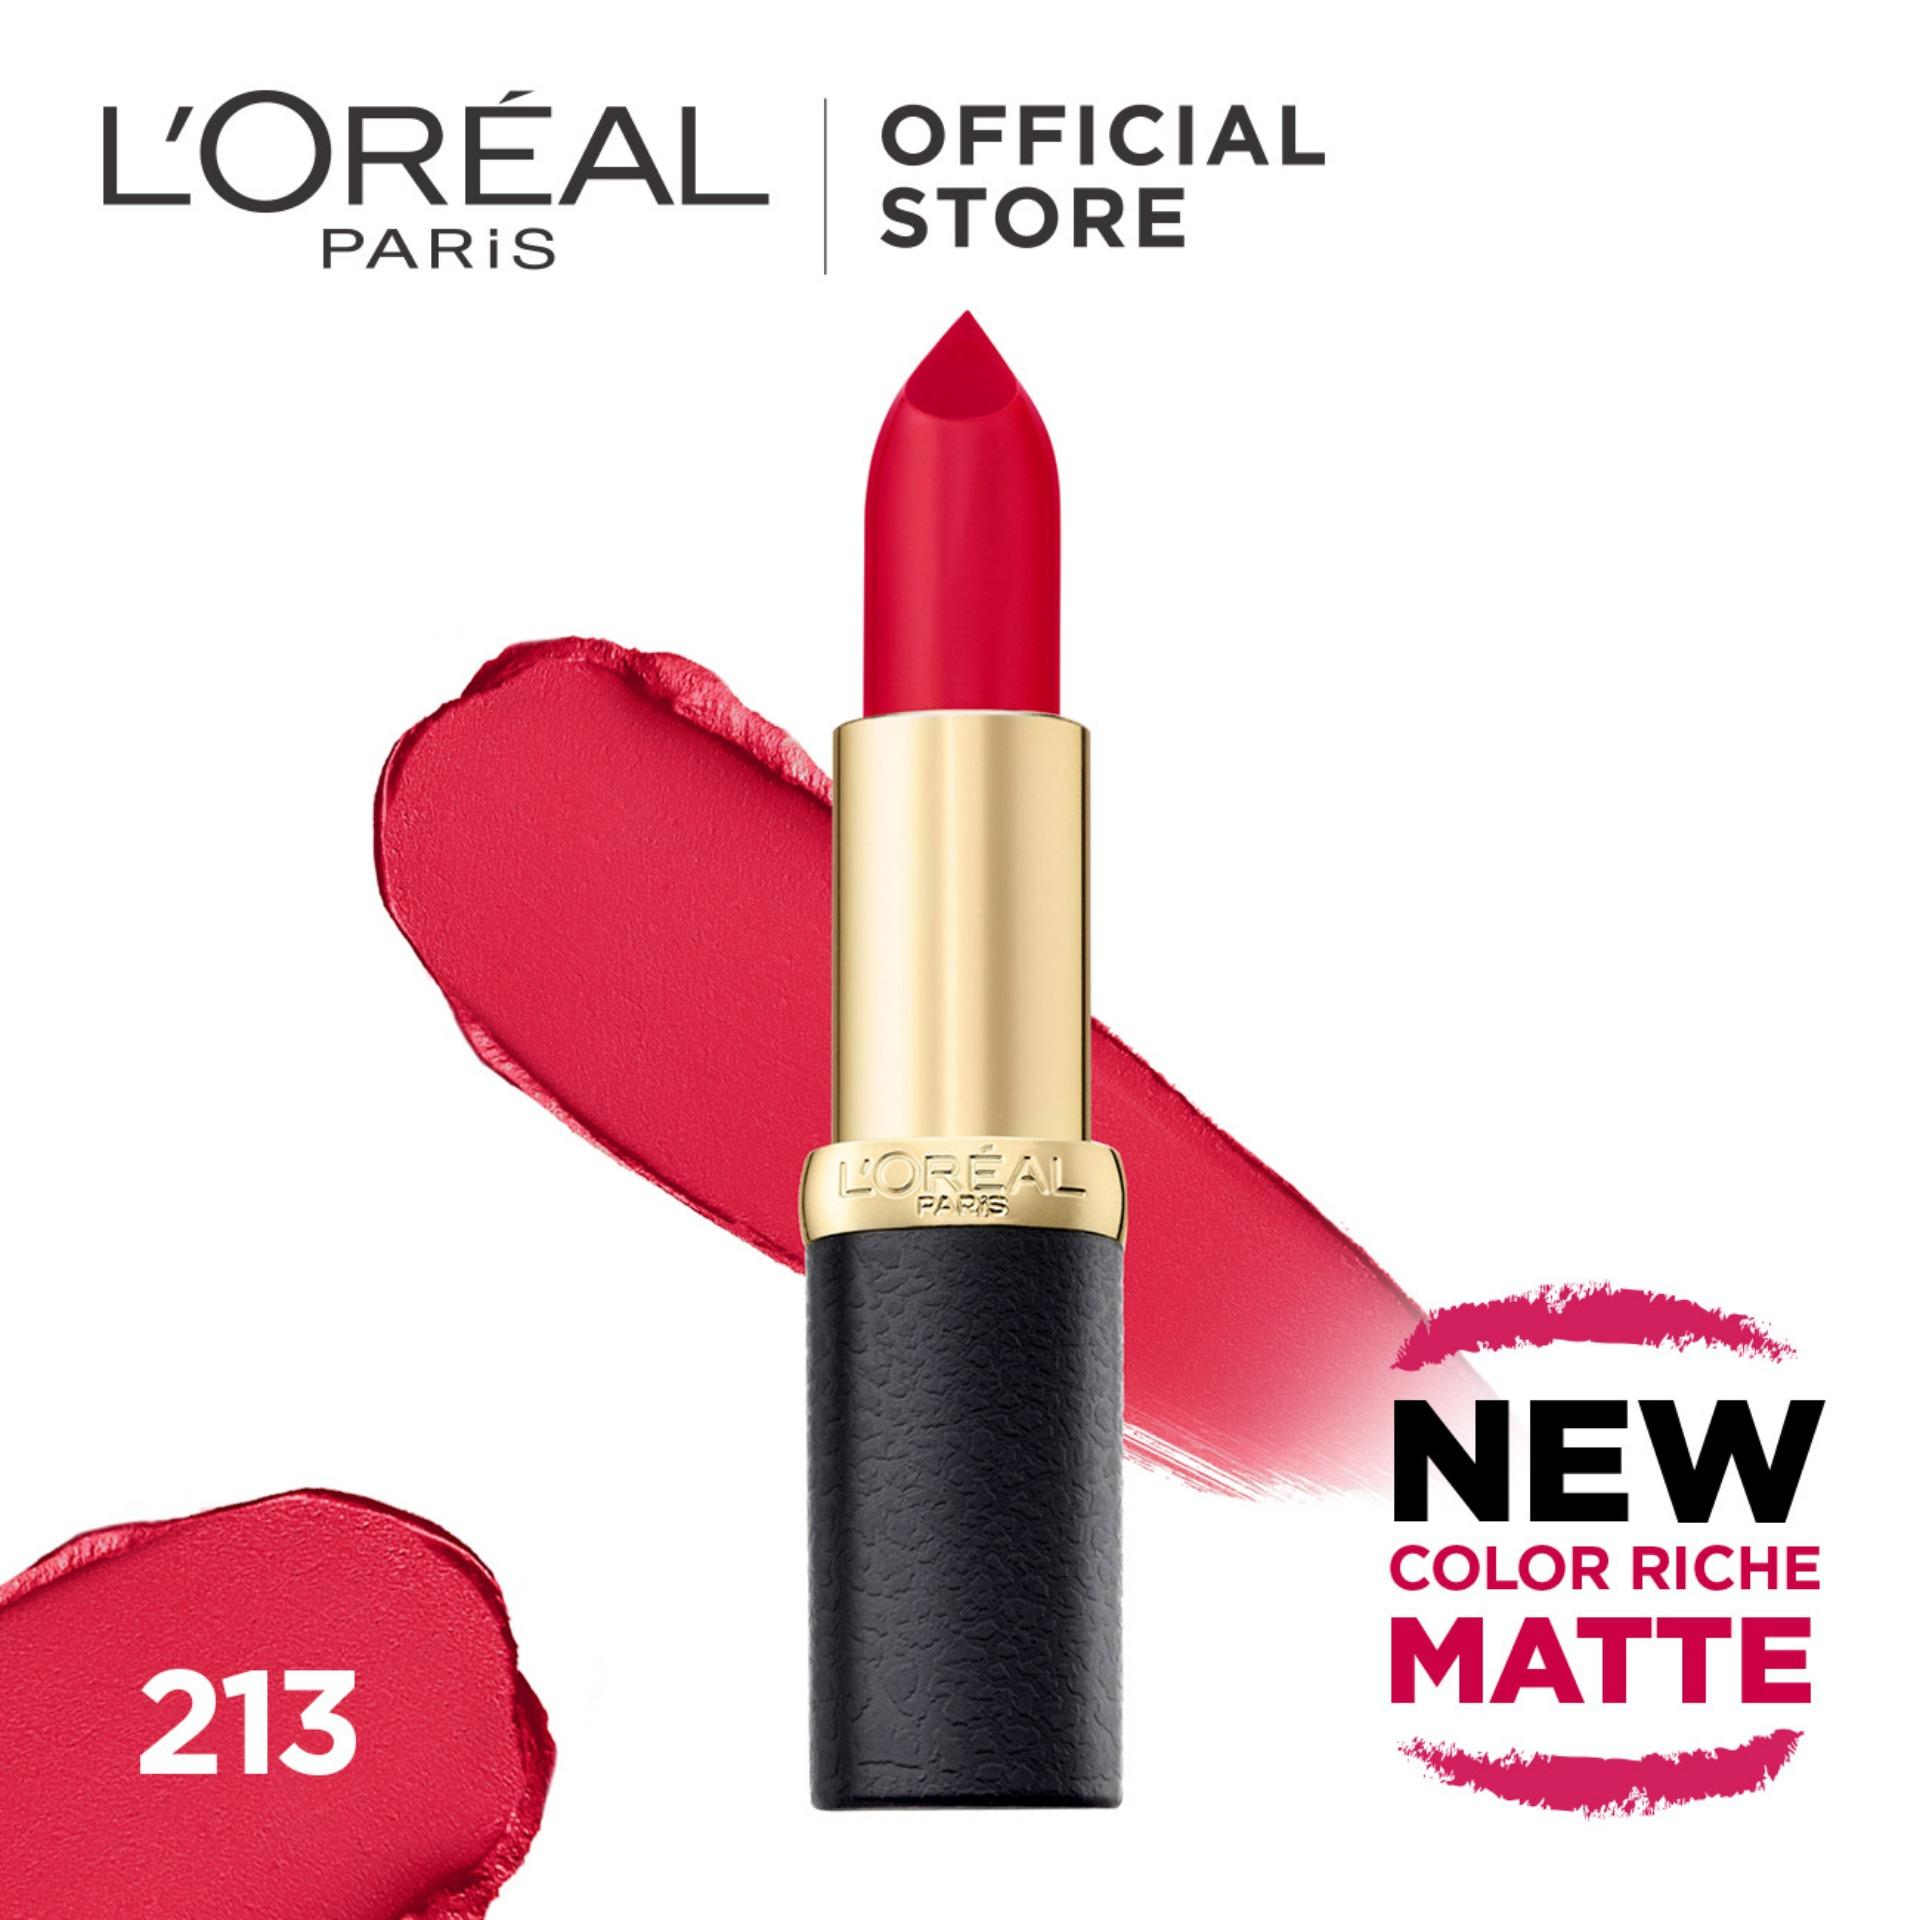 Loreal Paris Color Riche Matte Lipsticks By Loreal Paris.